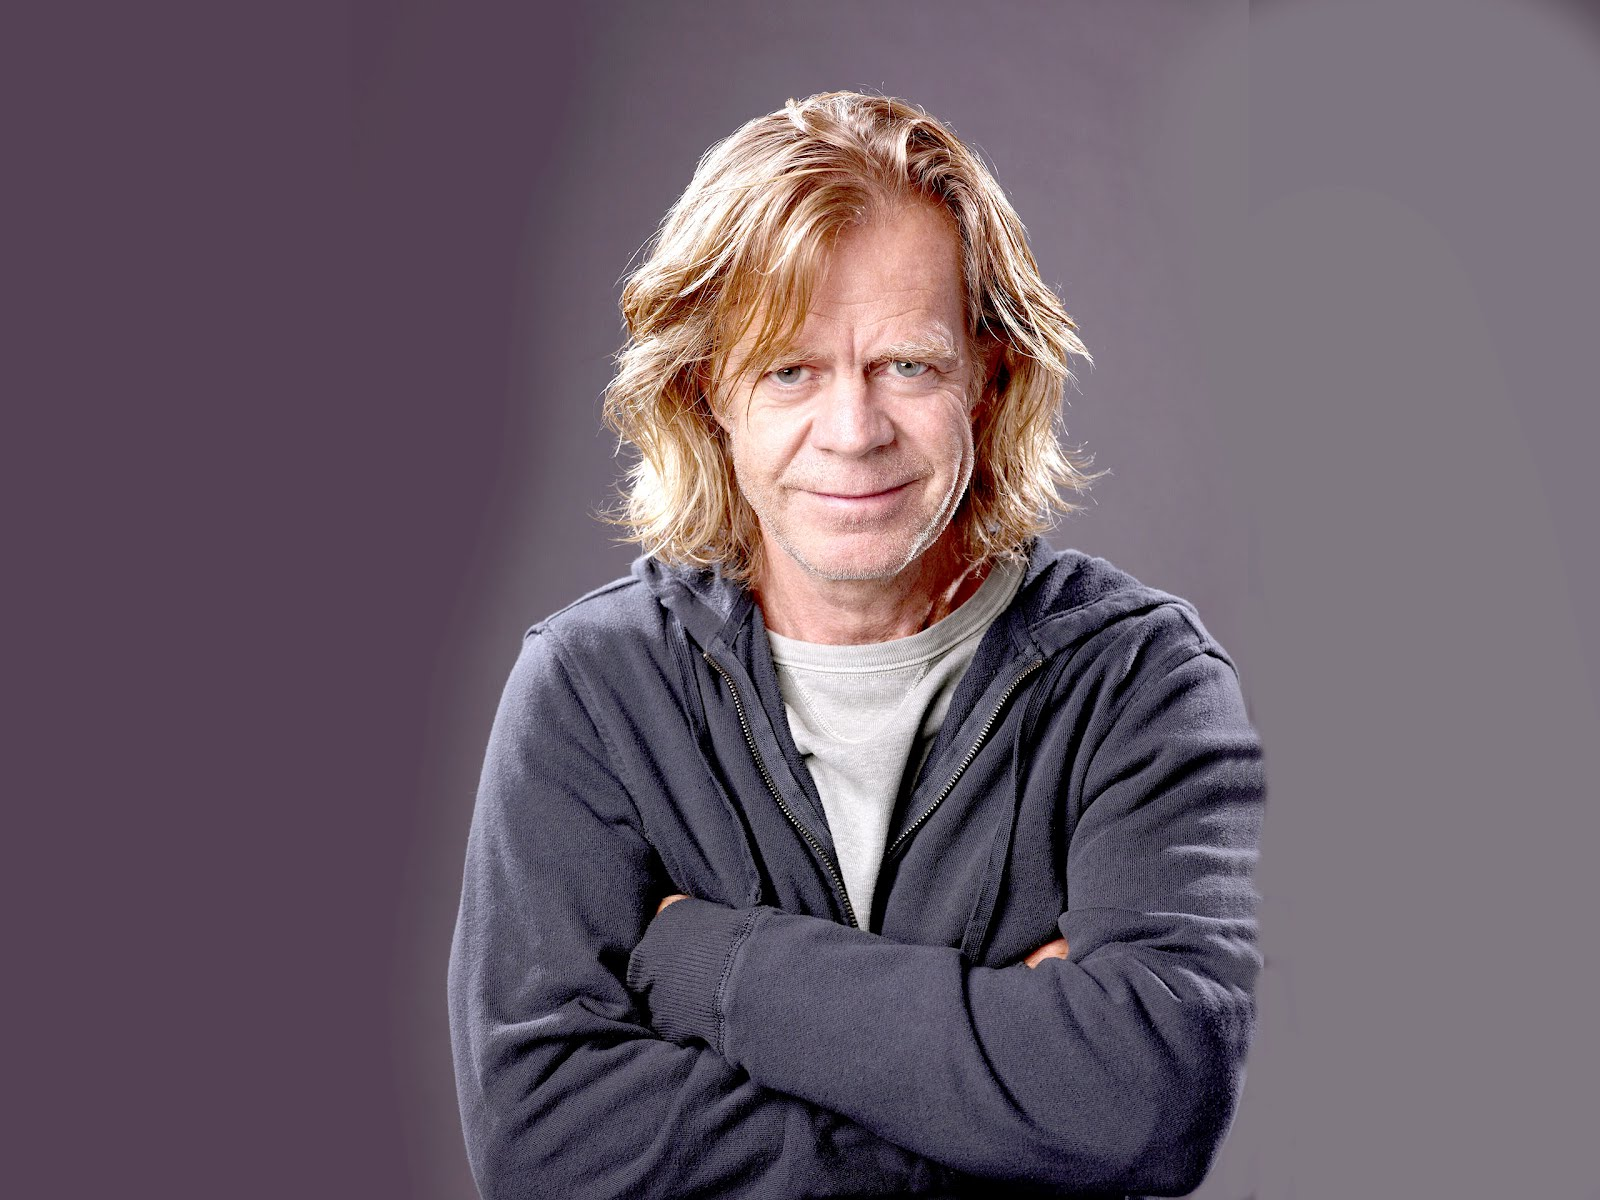 Wallpapers Collections: william h. macy wallpapers